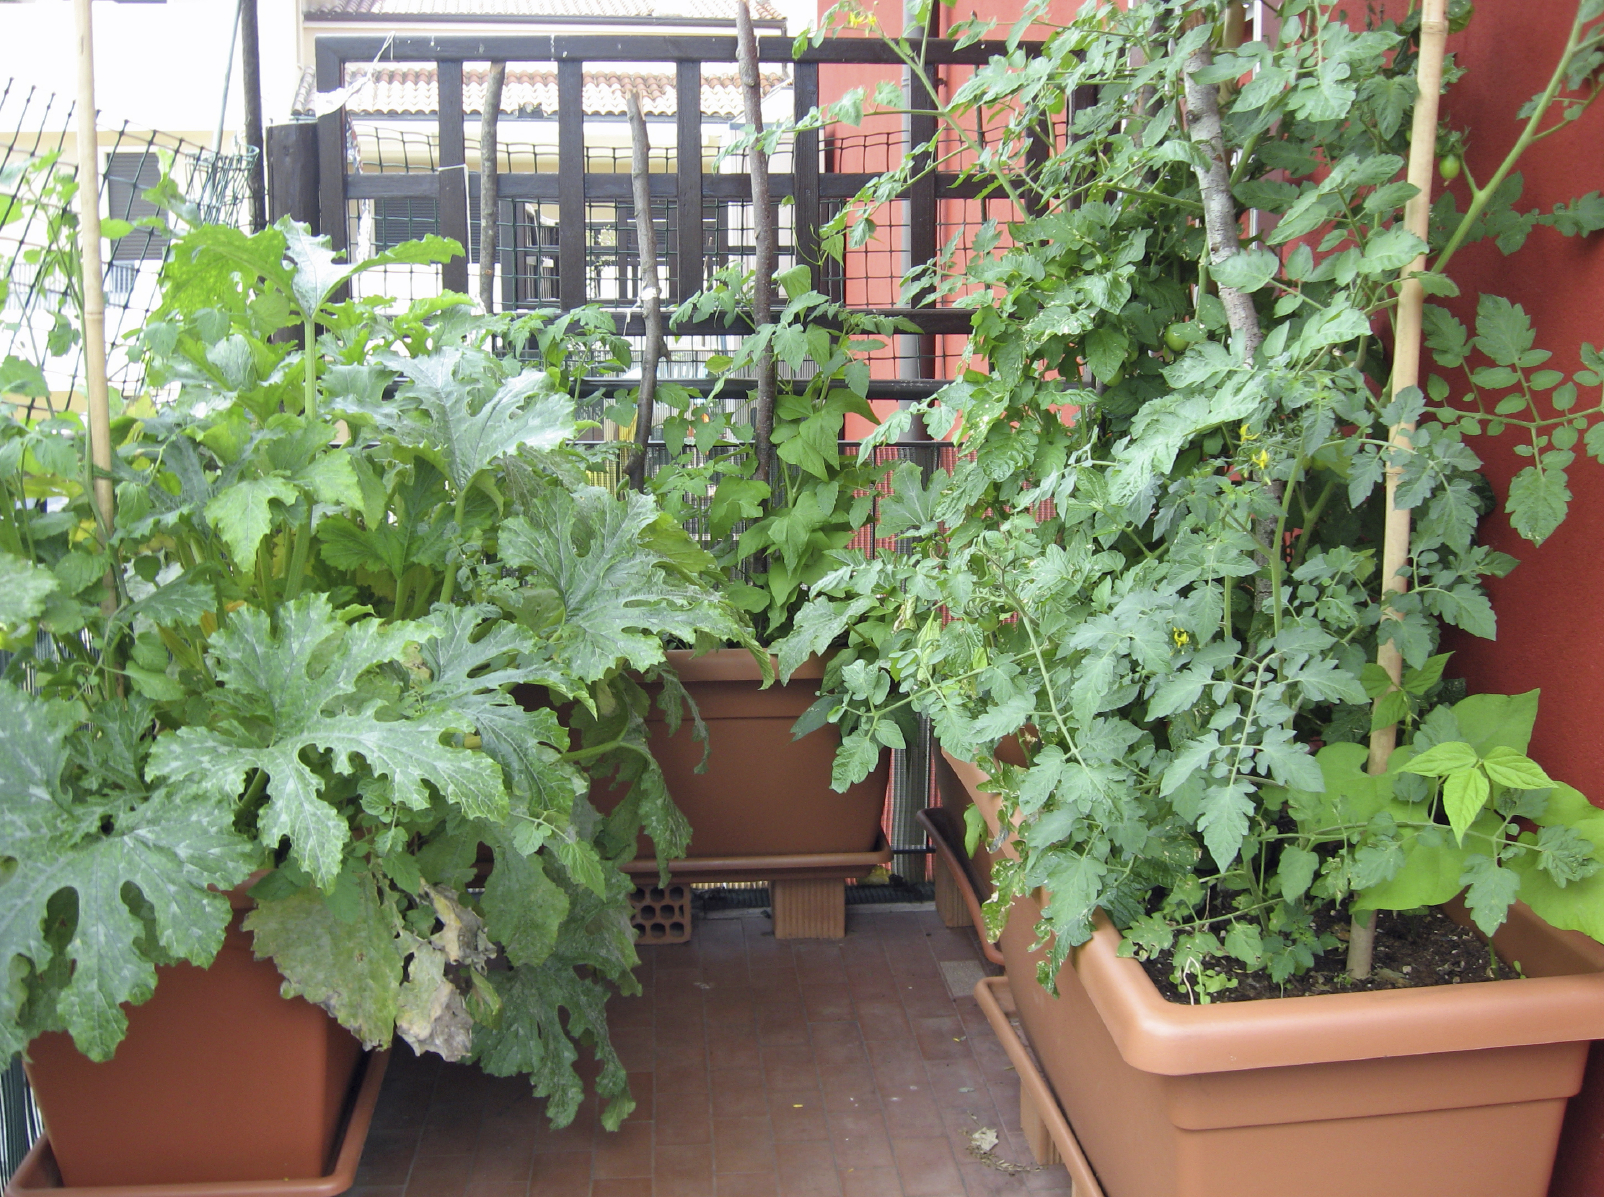 Picture of: Balcony vegetable garden in pot